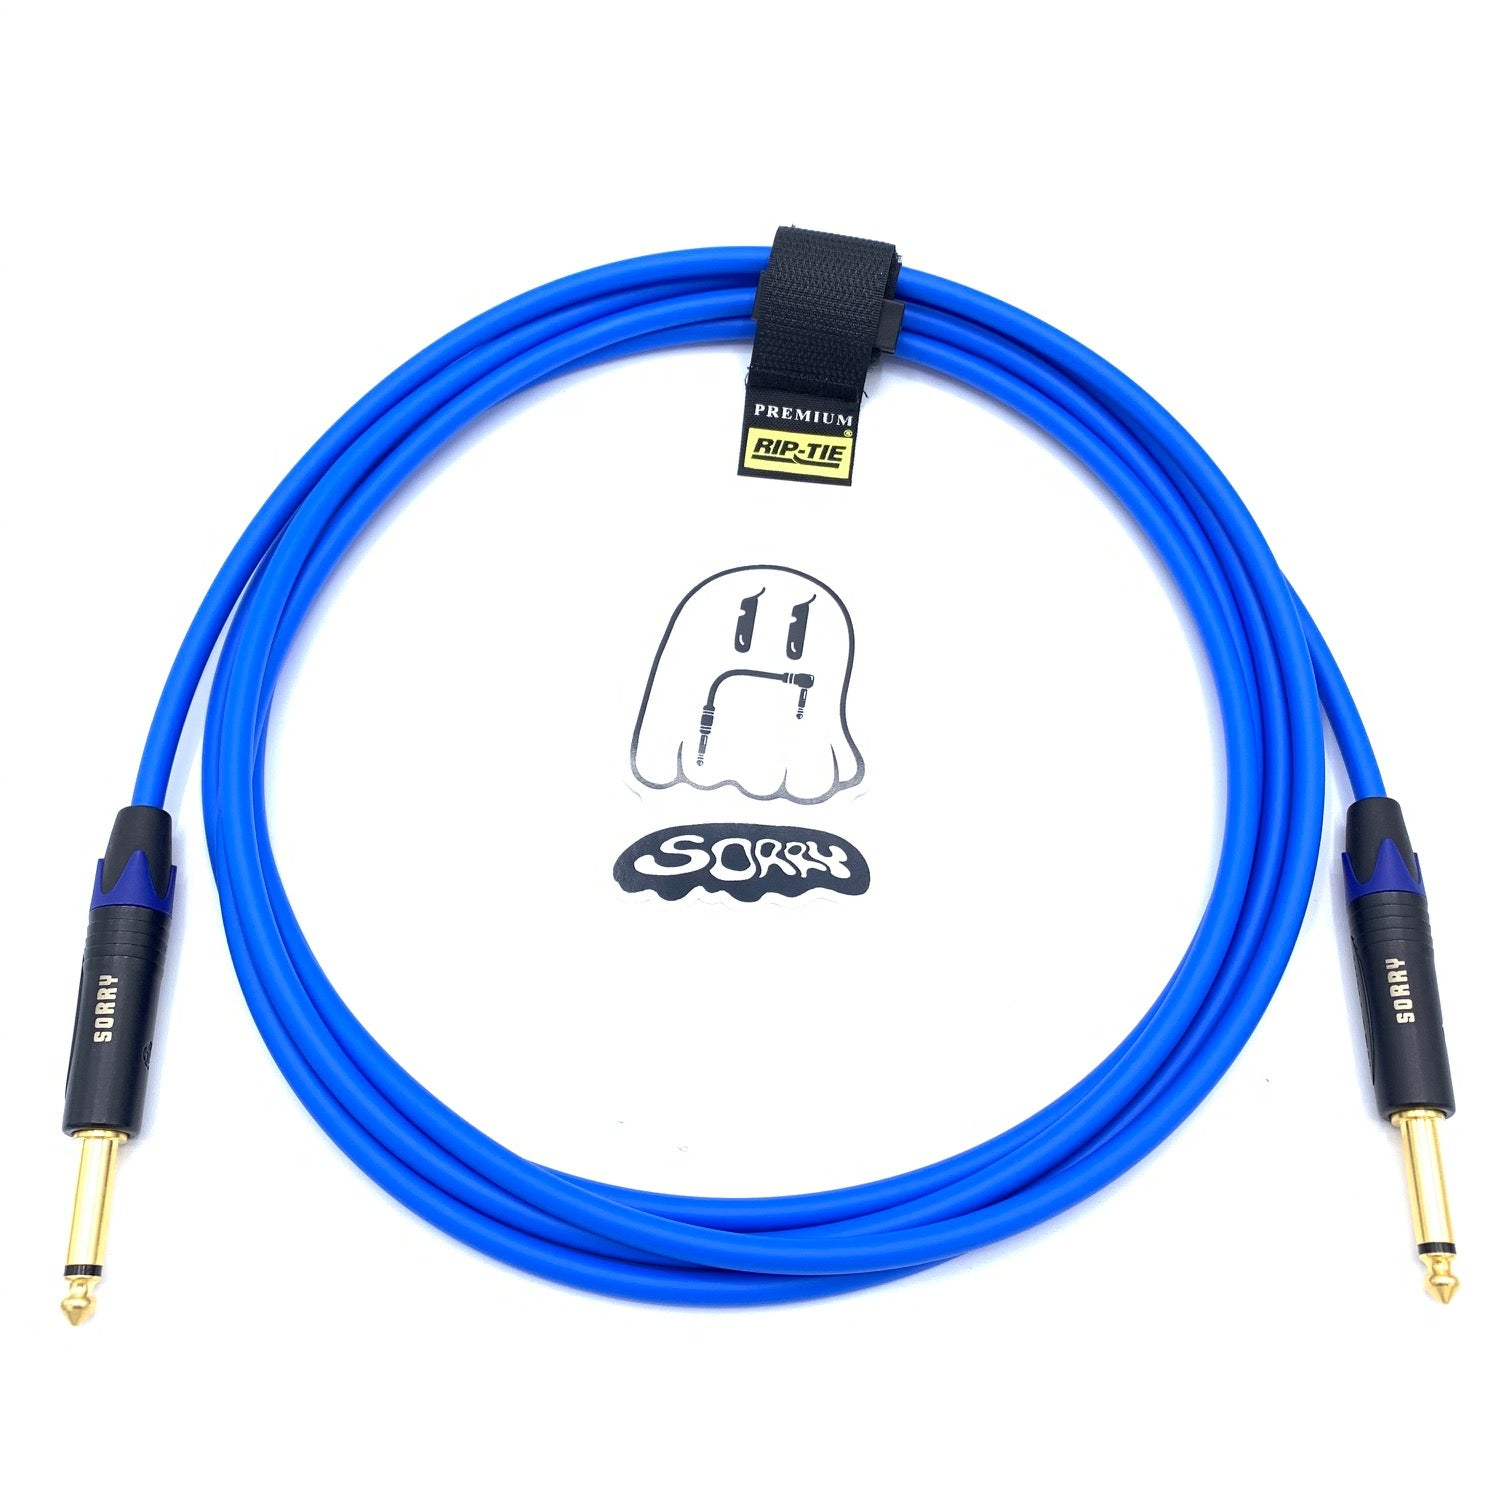 SORRY Straight to Straight Guitar / Instrument Cable - Standard Blue